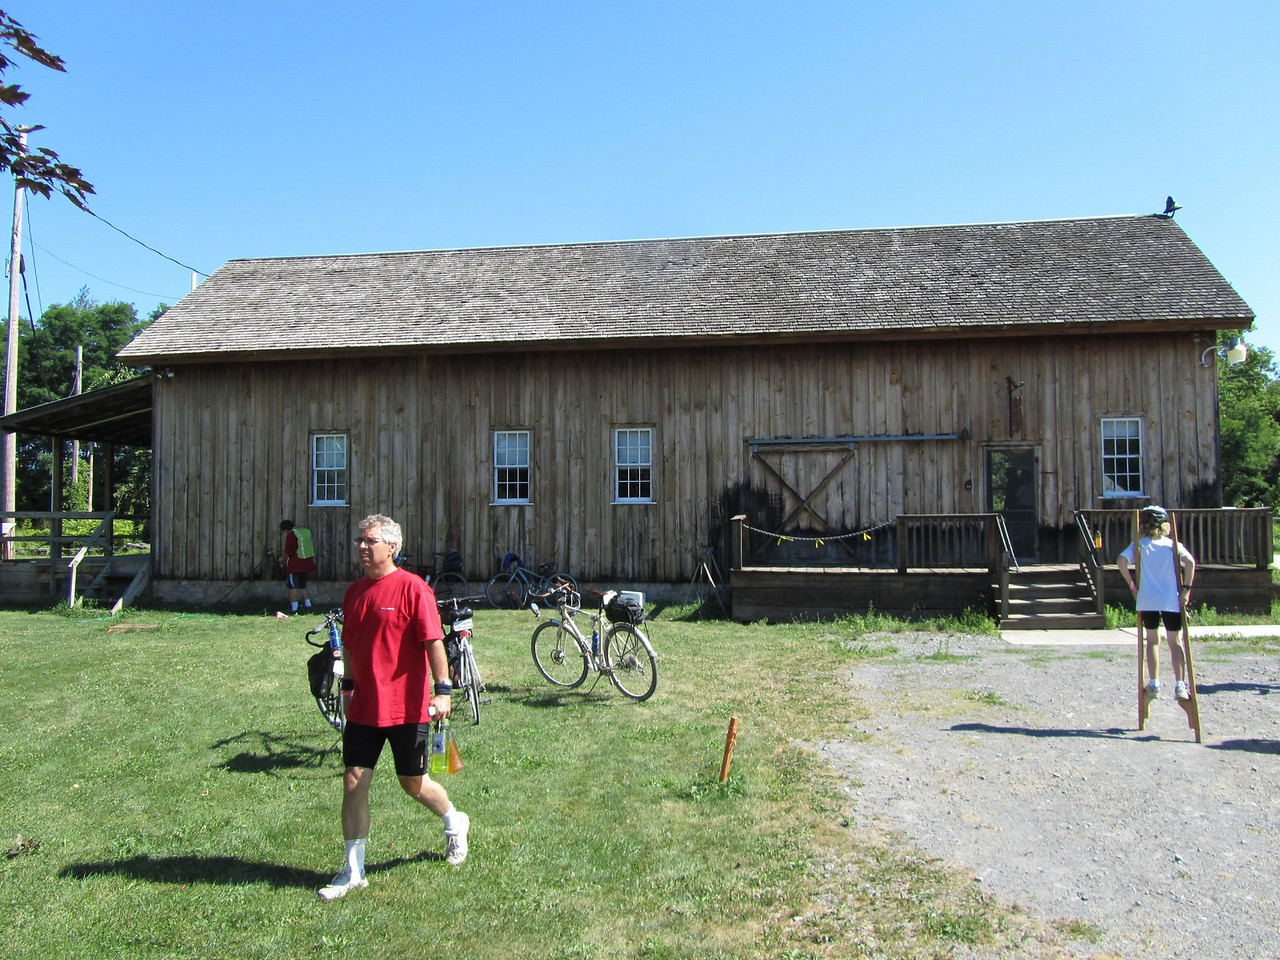 Chittinango boat landing museum. The dry docks and boat building barns are still standing.